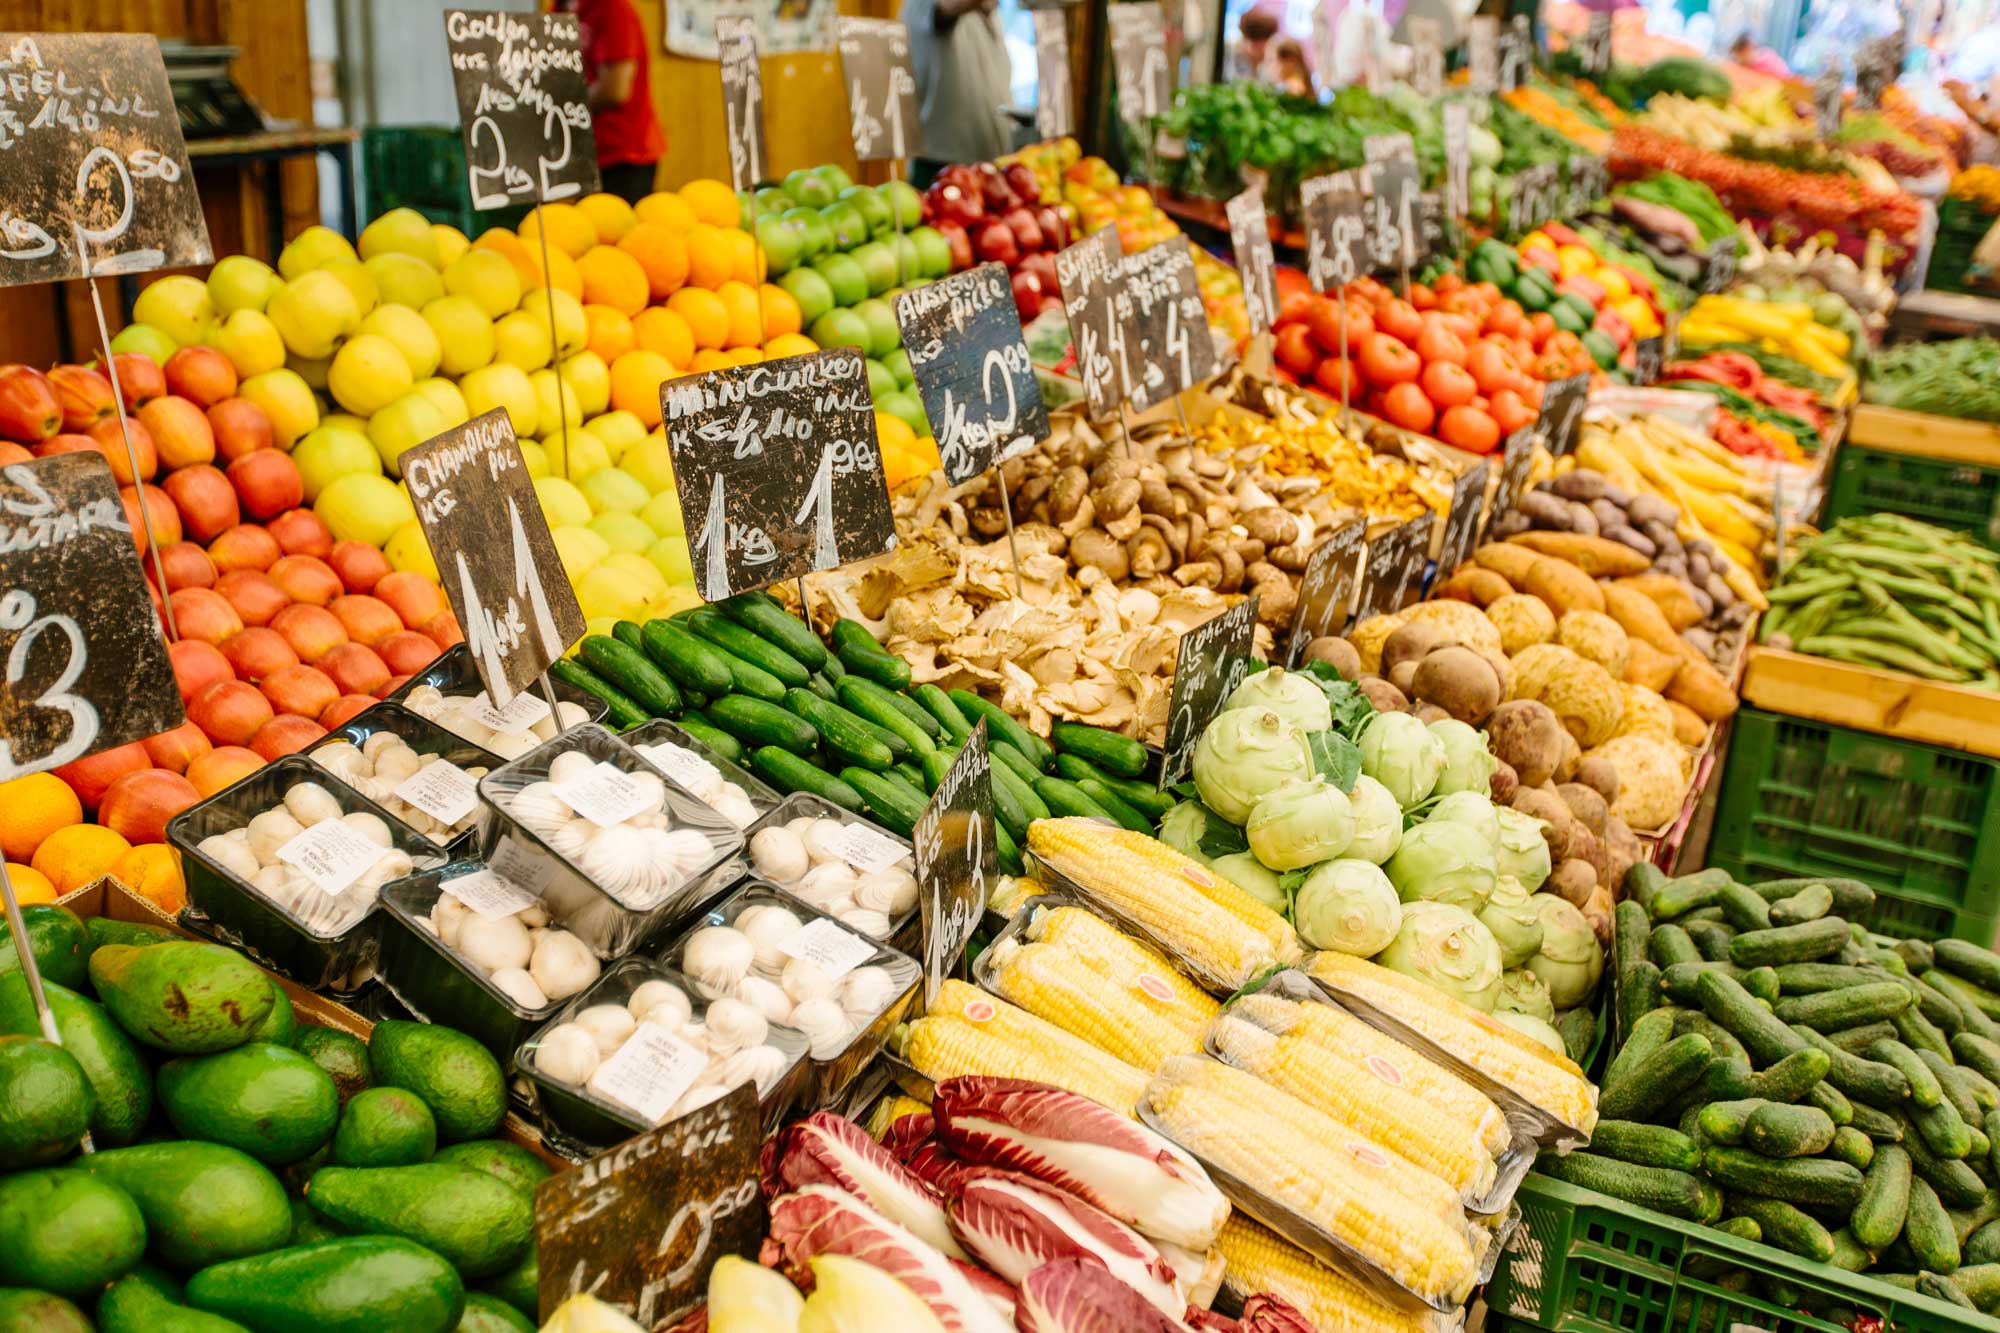 Seemingly endless displays of various fruits and vegetables.